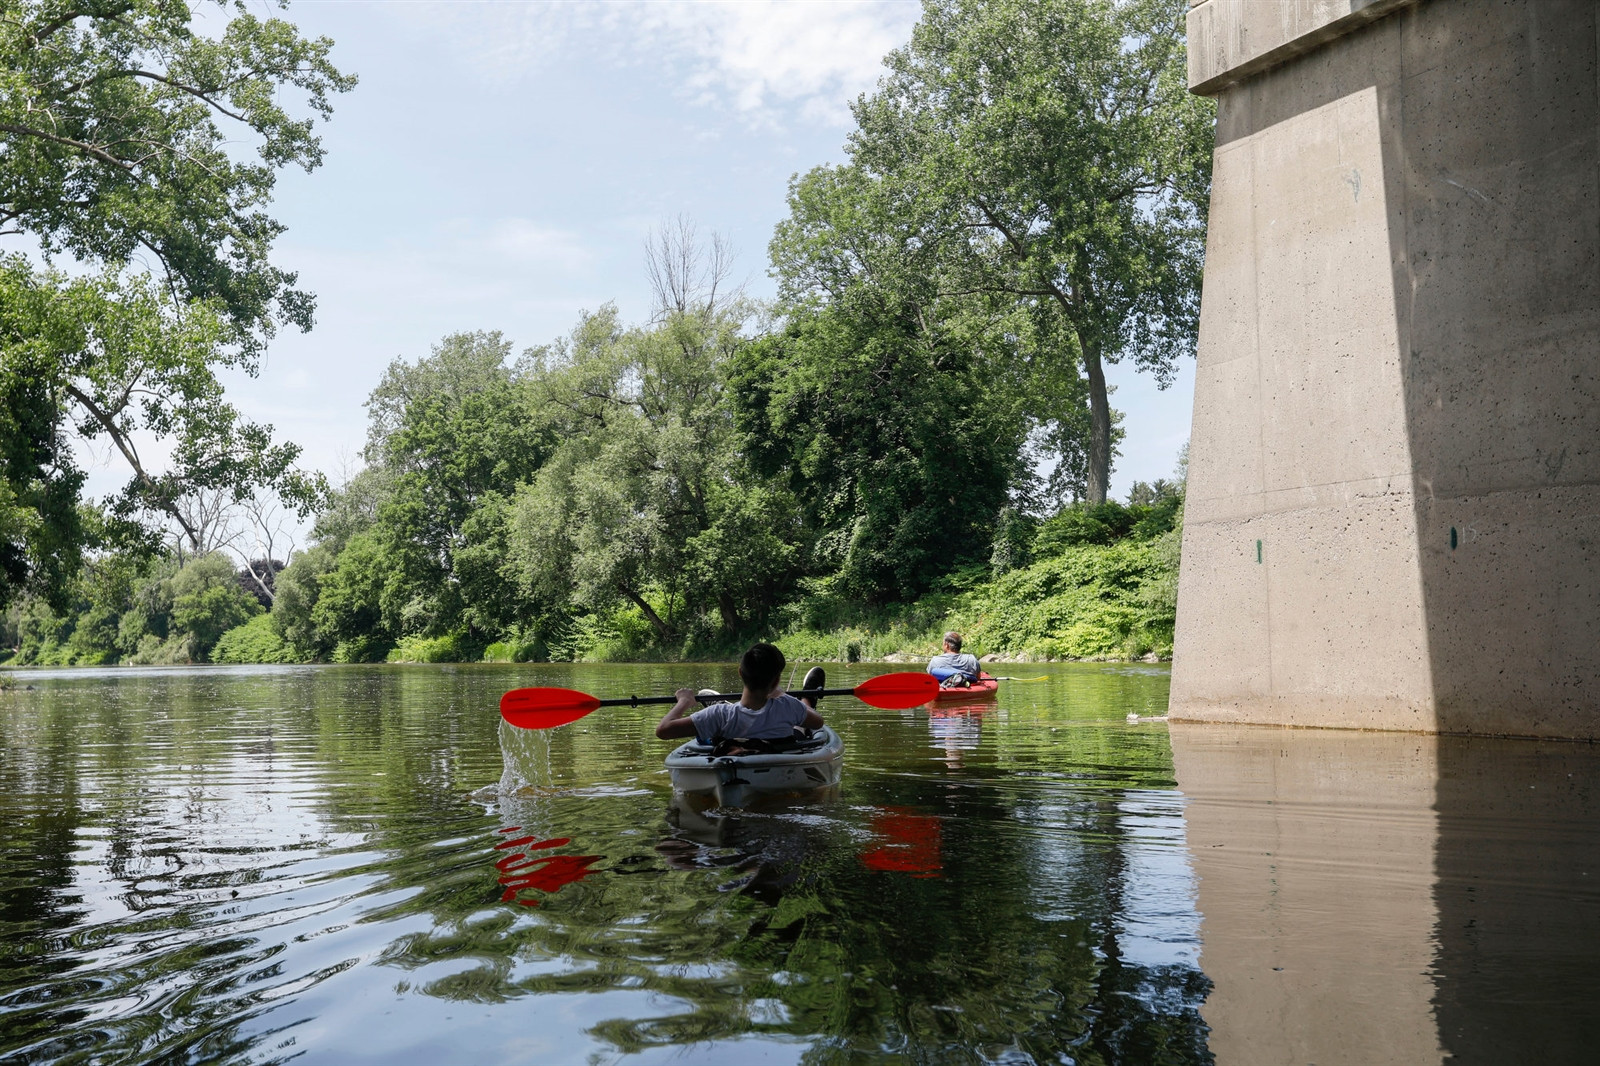 The Buffalo River Urban Canoe Trail spans from Harlem Road in West Seneca to the Buffalo Lighthouse where the river flows into Lake Erie, where paddlers can experience nature, history, industry and urban renewal in one epic journey.